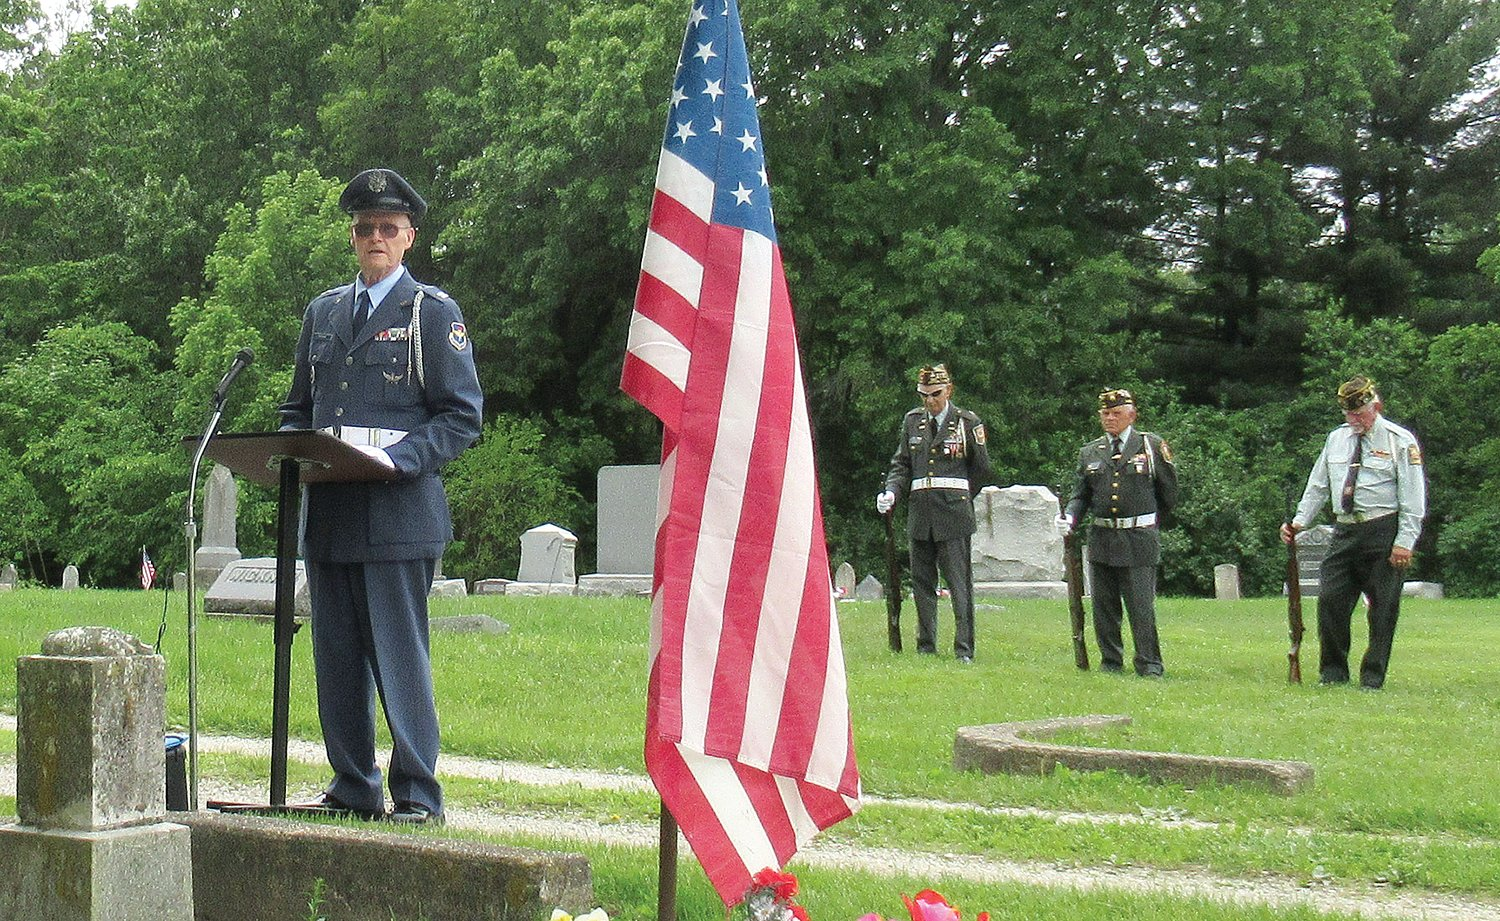 Bob Fuenhe, USAF retired, gave the Memorial Day address at Irving Sunday, followed by a rifle salute and Taps from the Joint Armed Forces Honor Guard, including Lee Cerny, Dale Walcher, Ken Marsh and Jim Palmer.